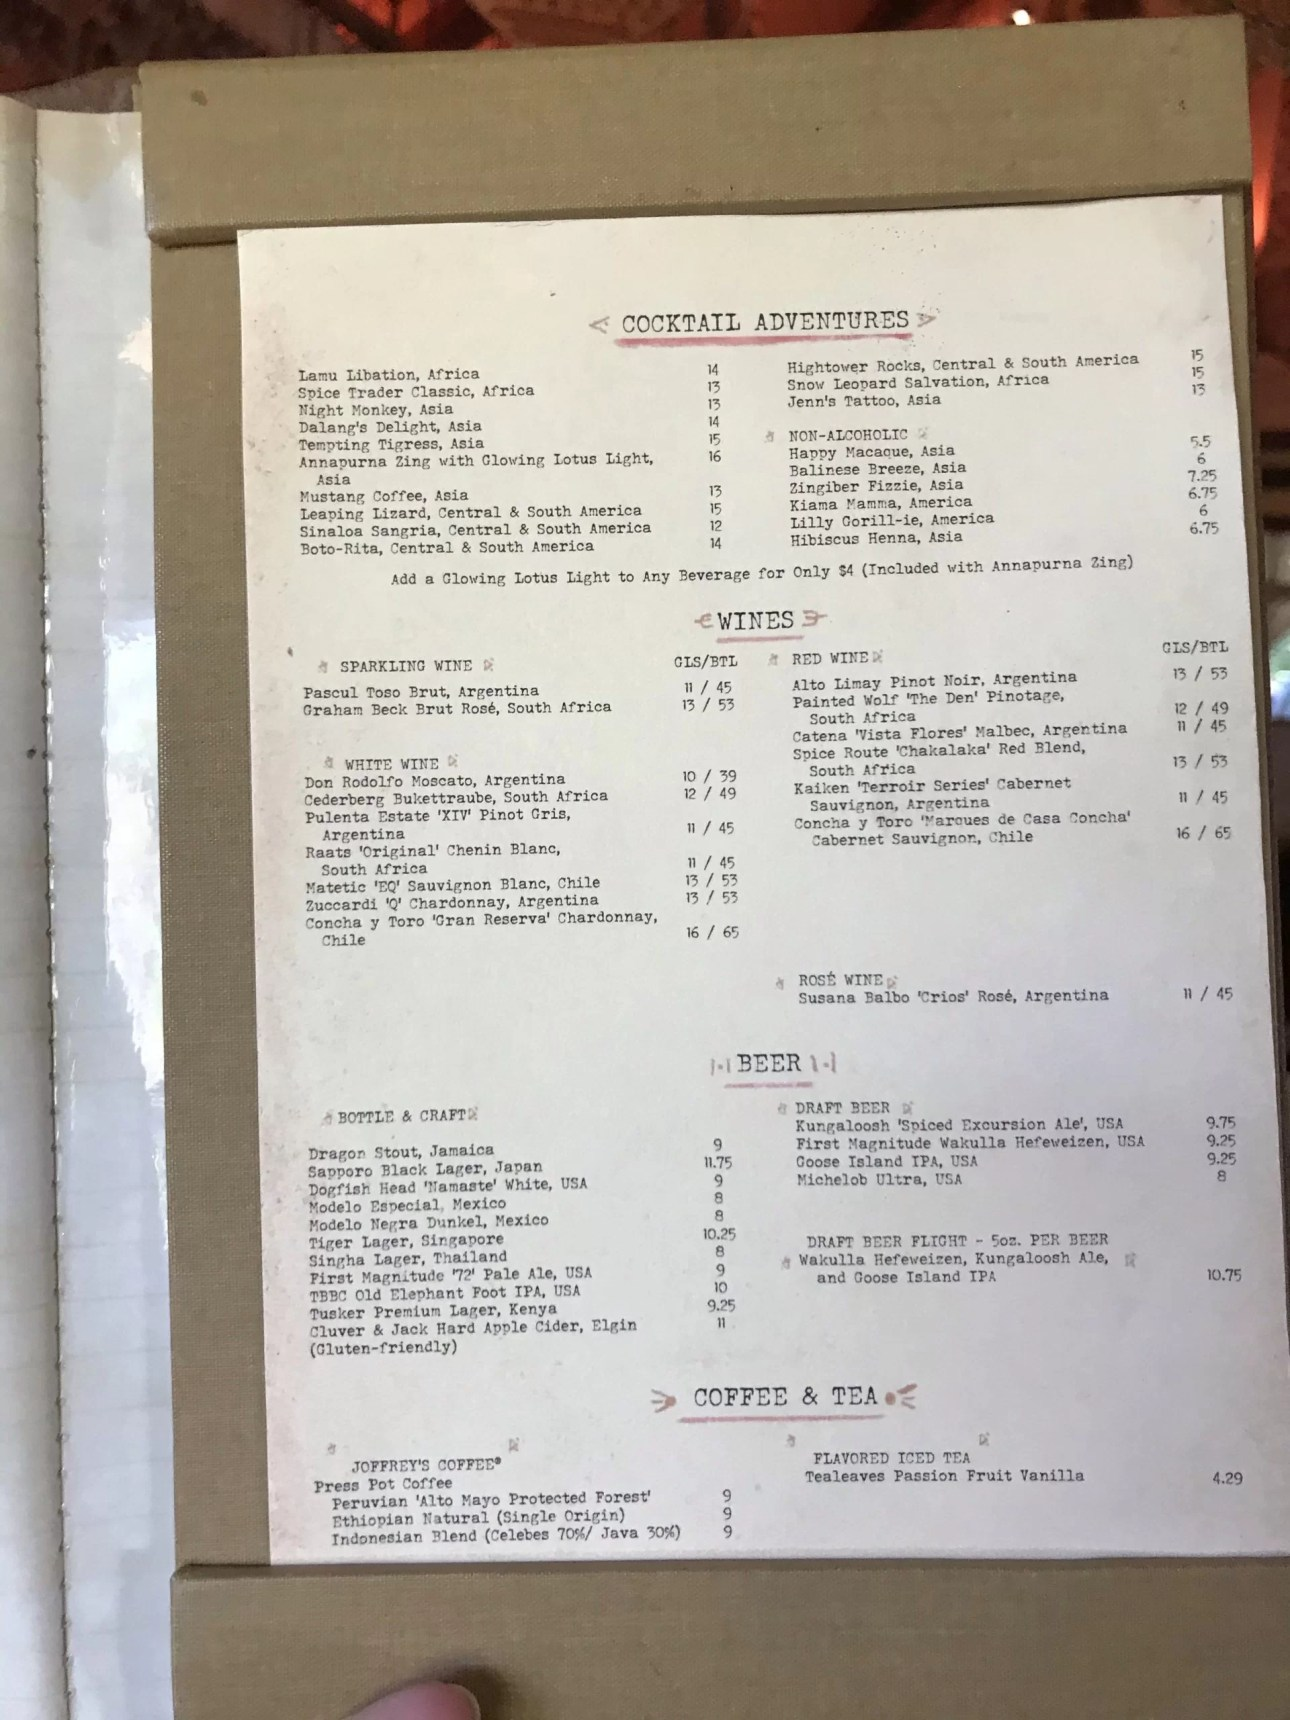 Cocktail Menu at Nomad's Lounge in Disney's Animal Kingdom 12/2019